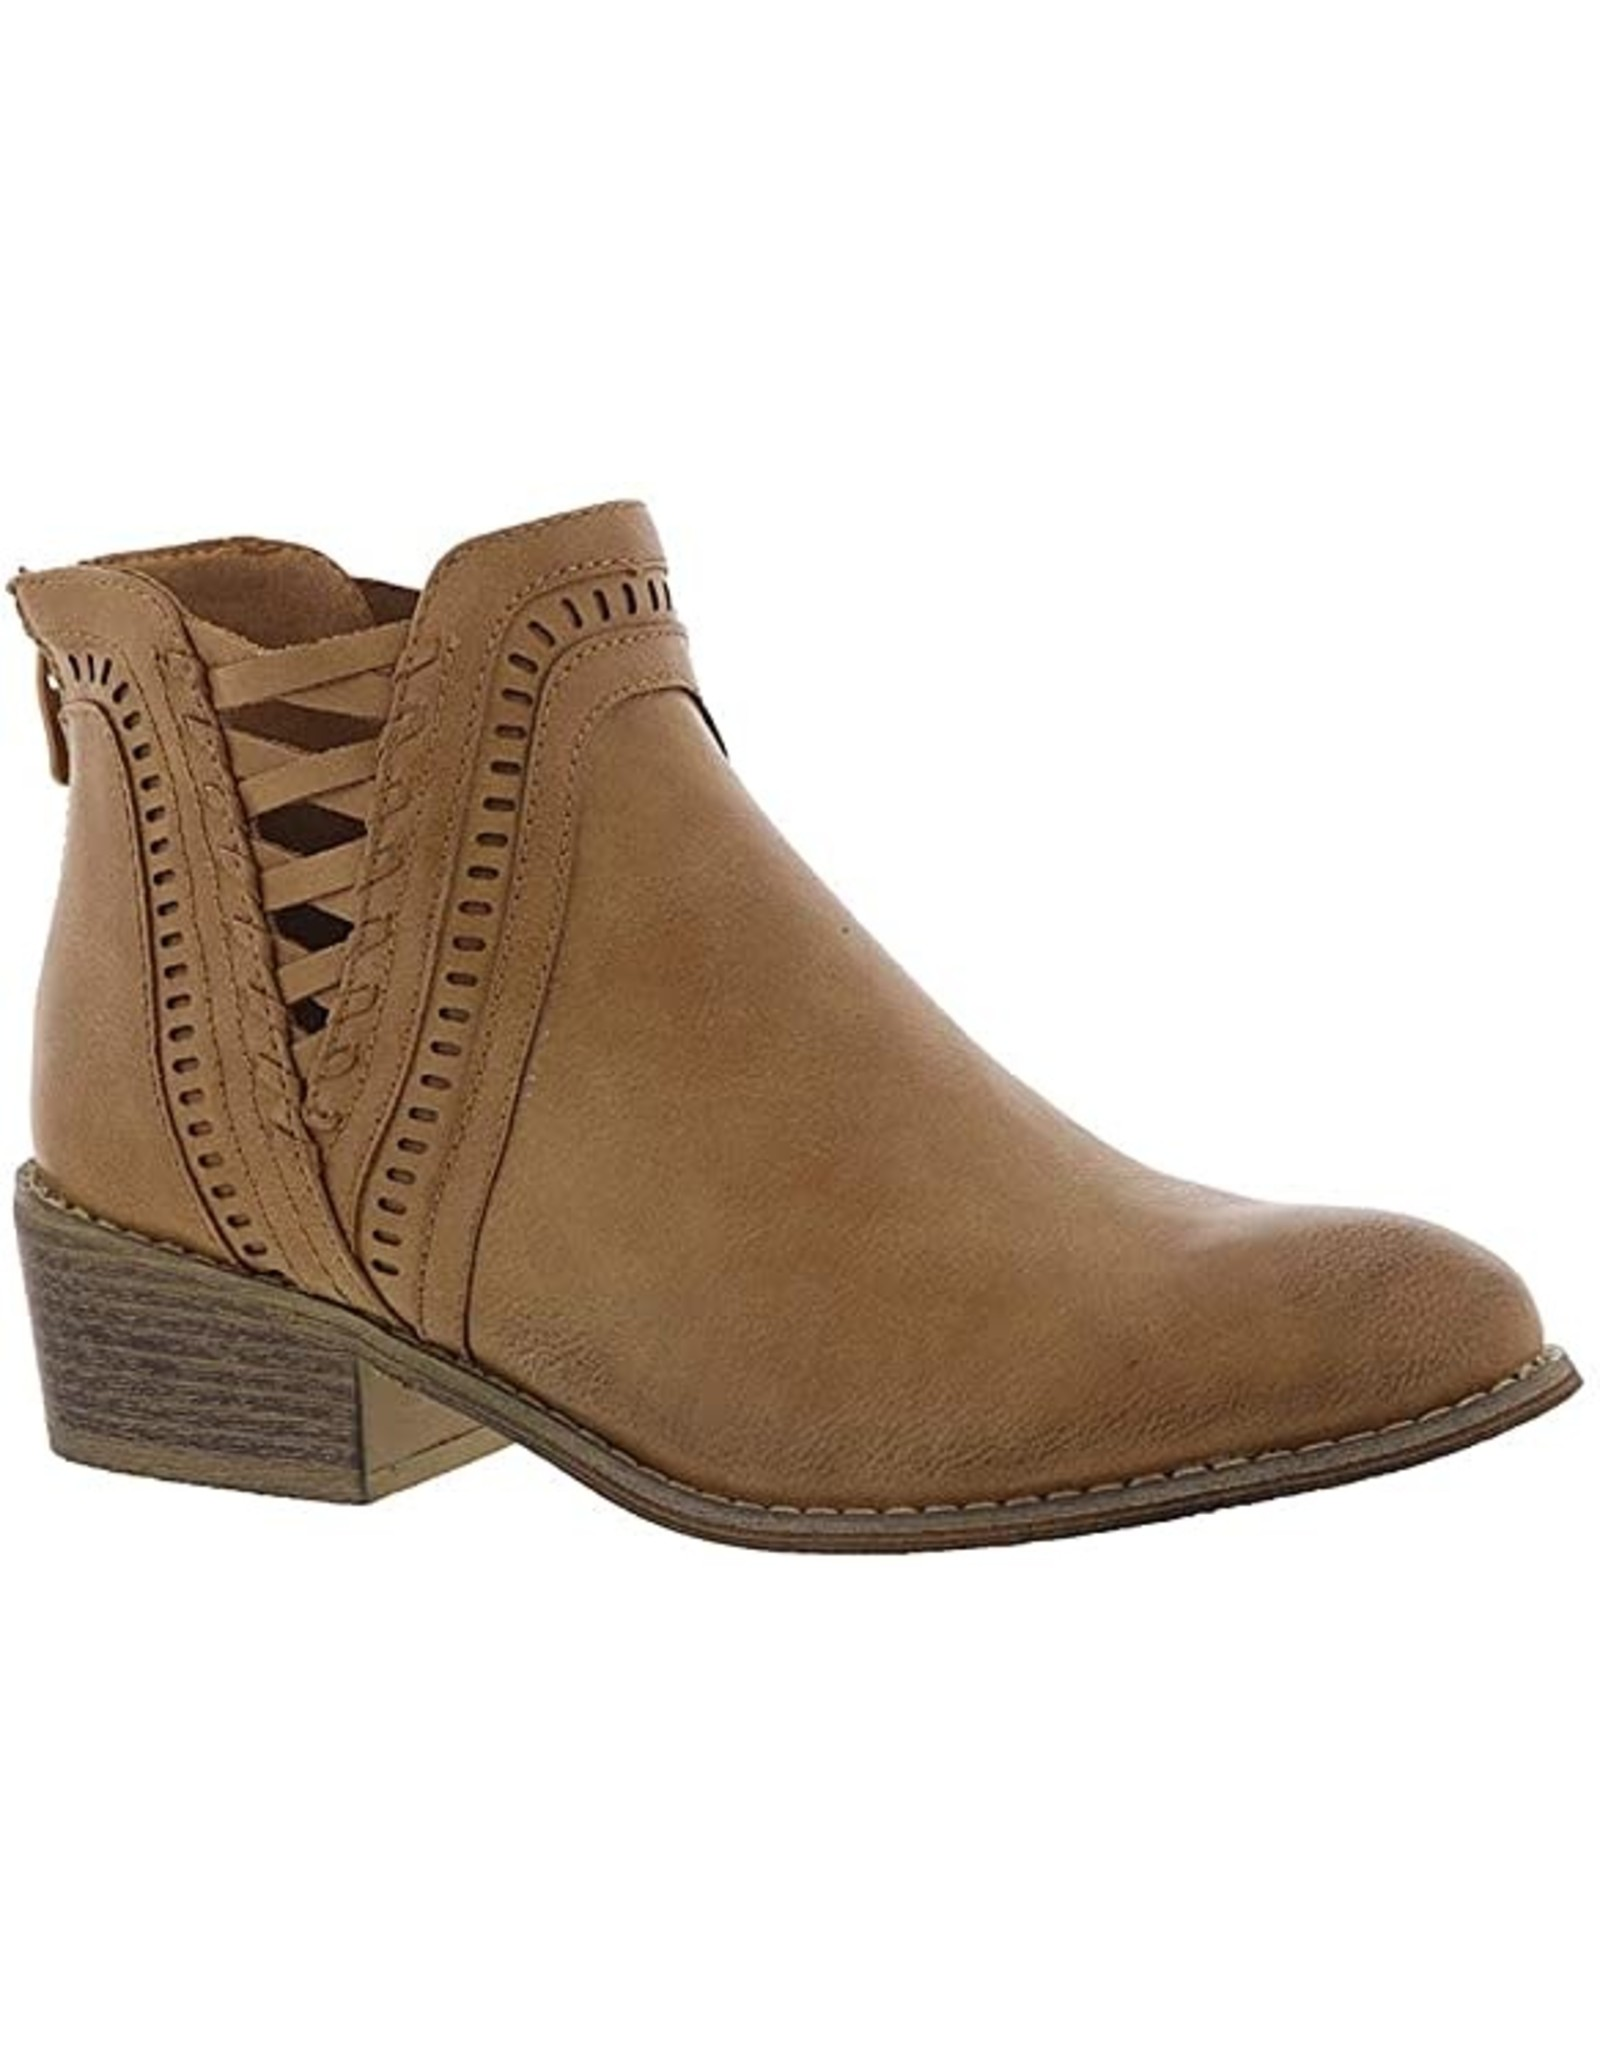 Corky's Detailed Bootie-Camel